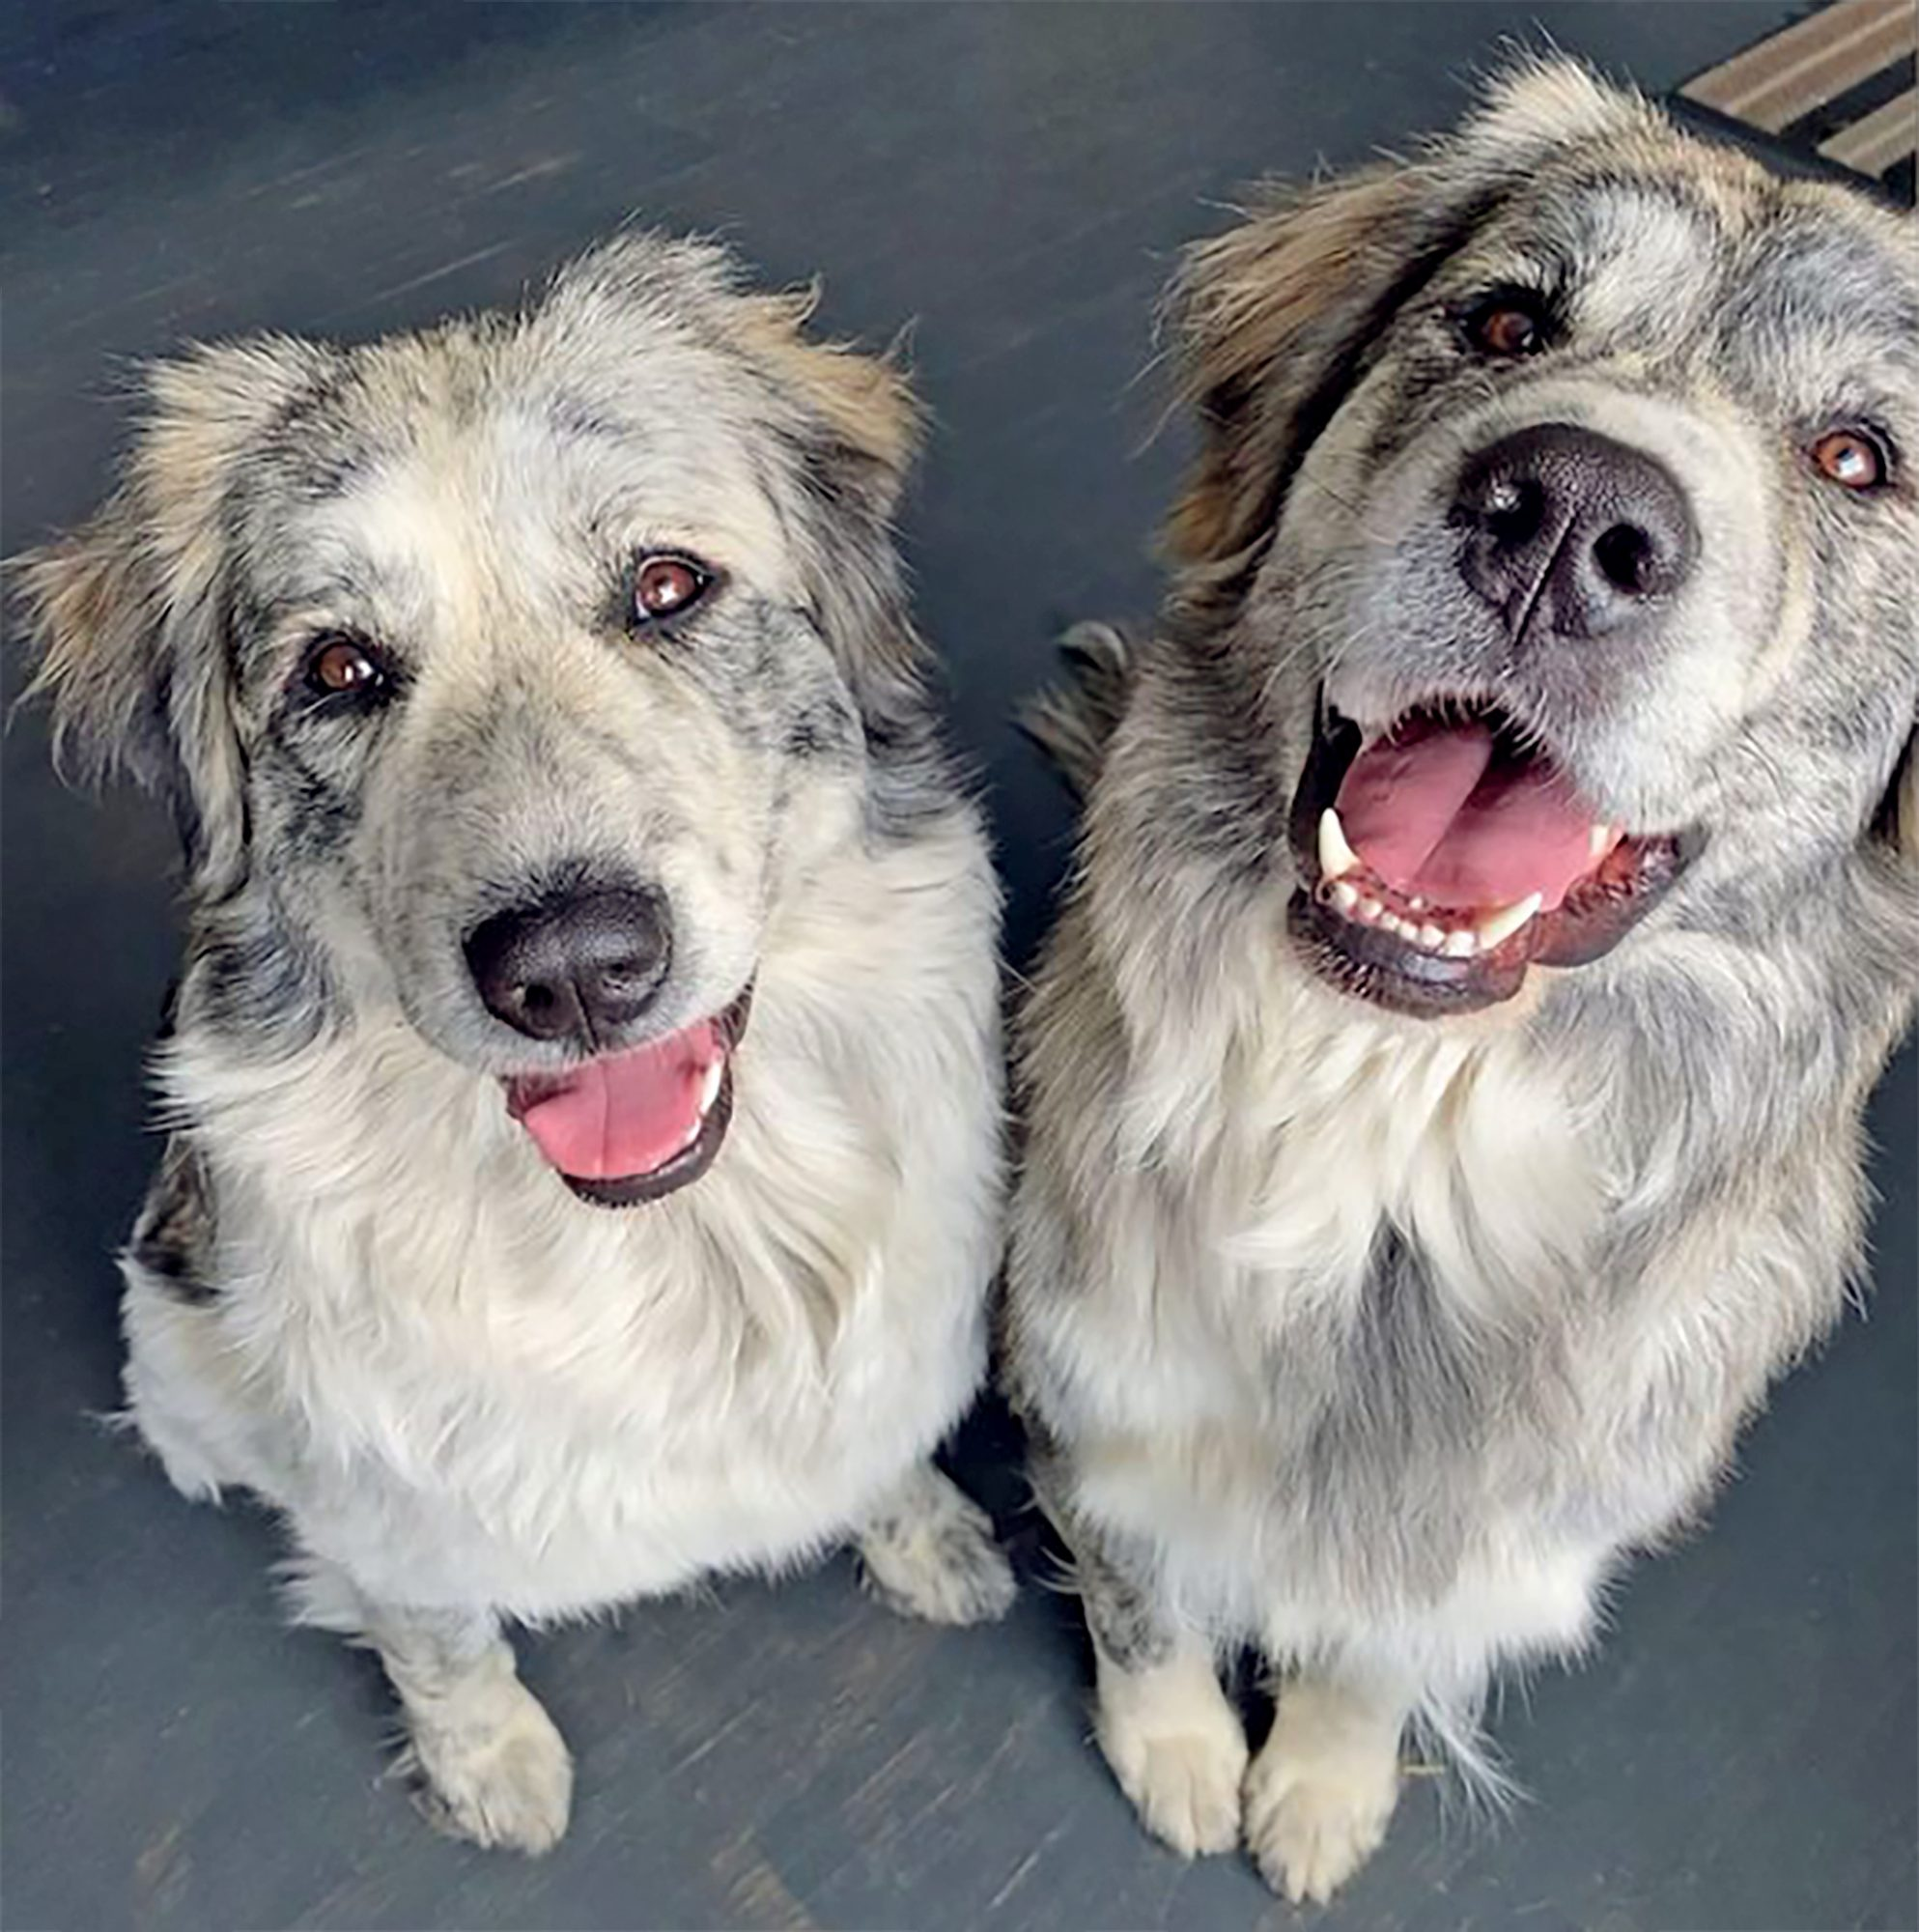 the pyrenees sisters two dogs with aussie markings and great pyrenees bodies